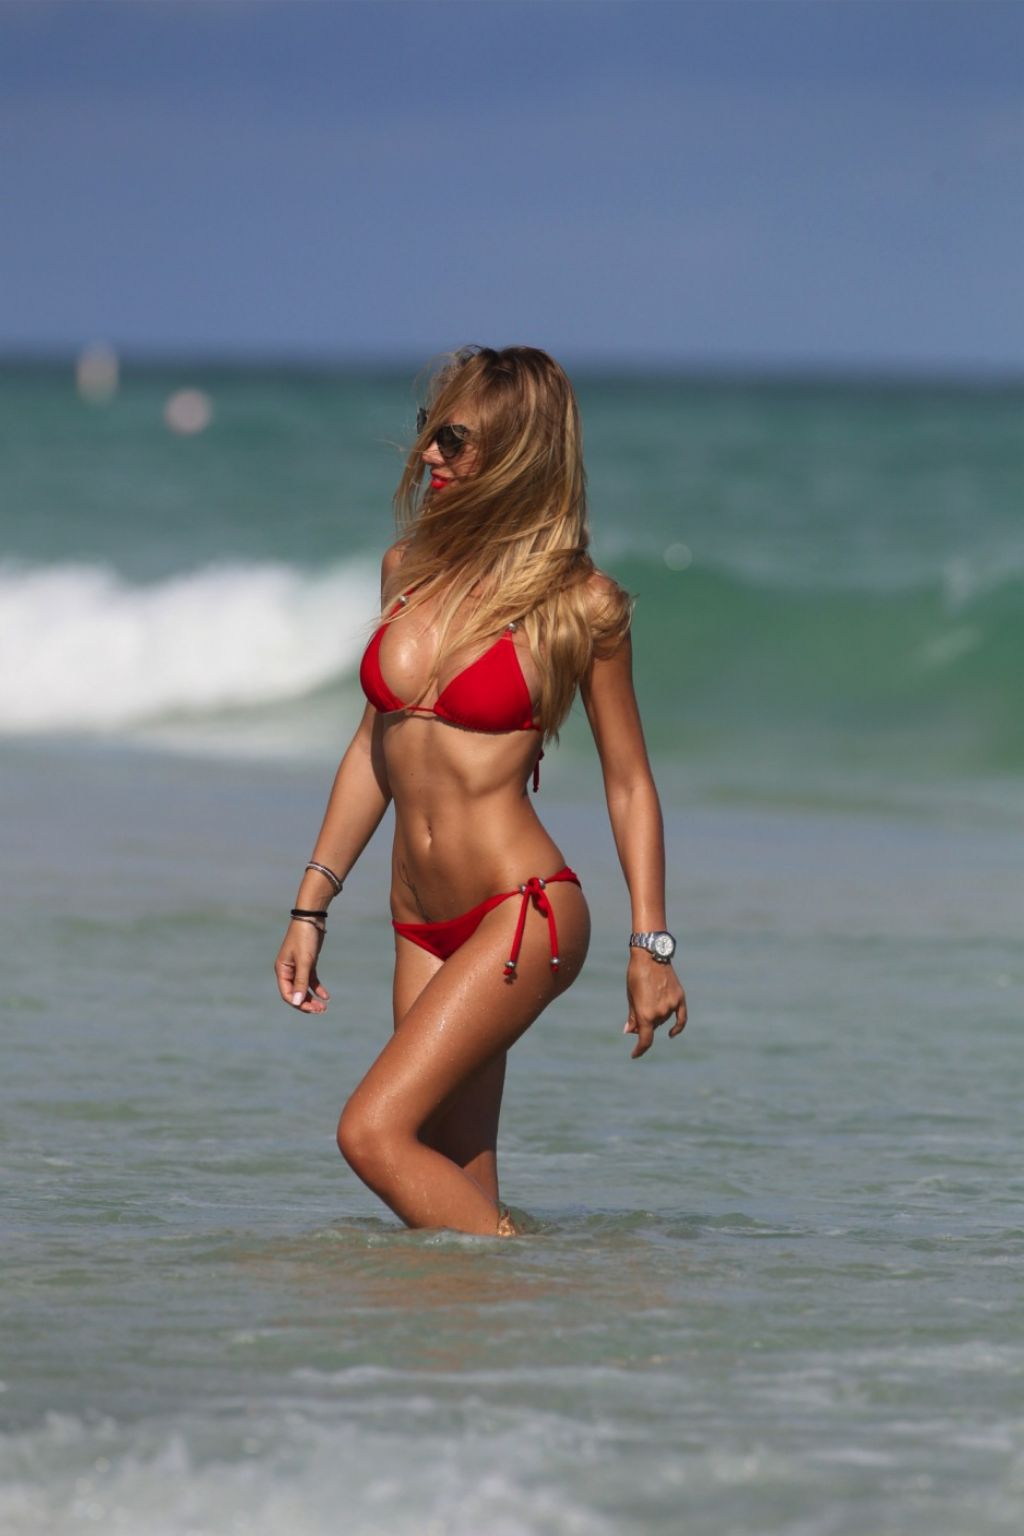 Laura Cremaschi in a Red Triangle Top Bikini -  Miami Beach November 2013